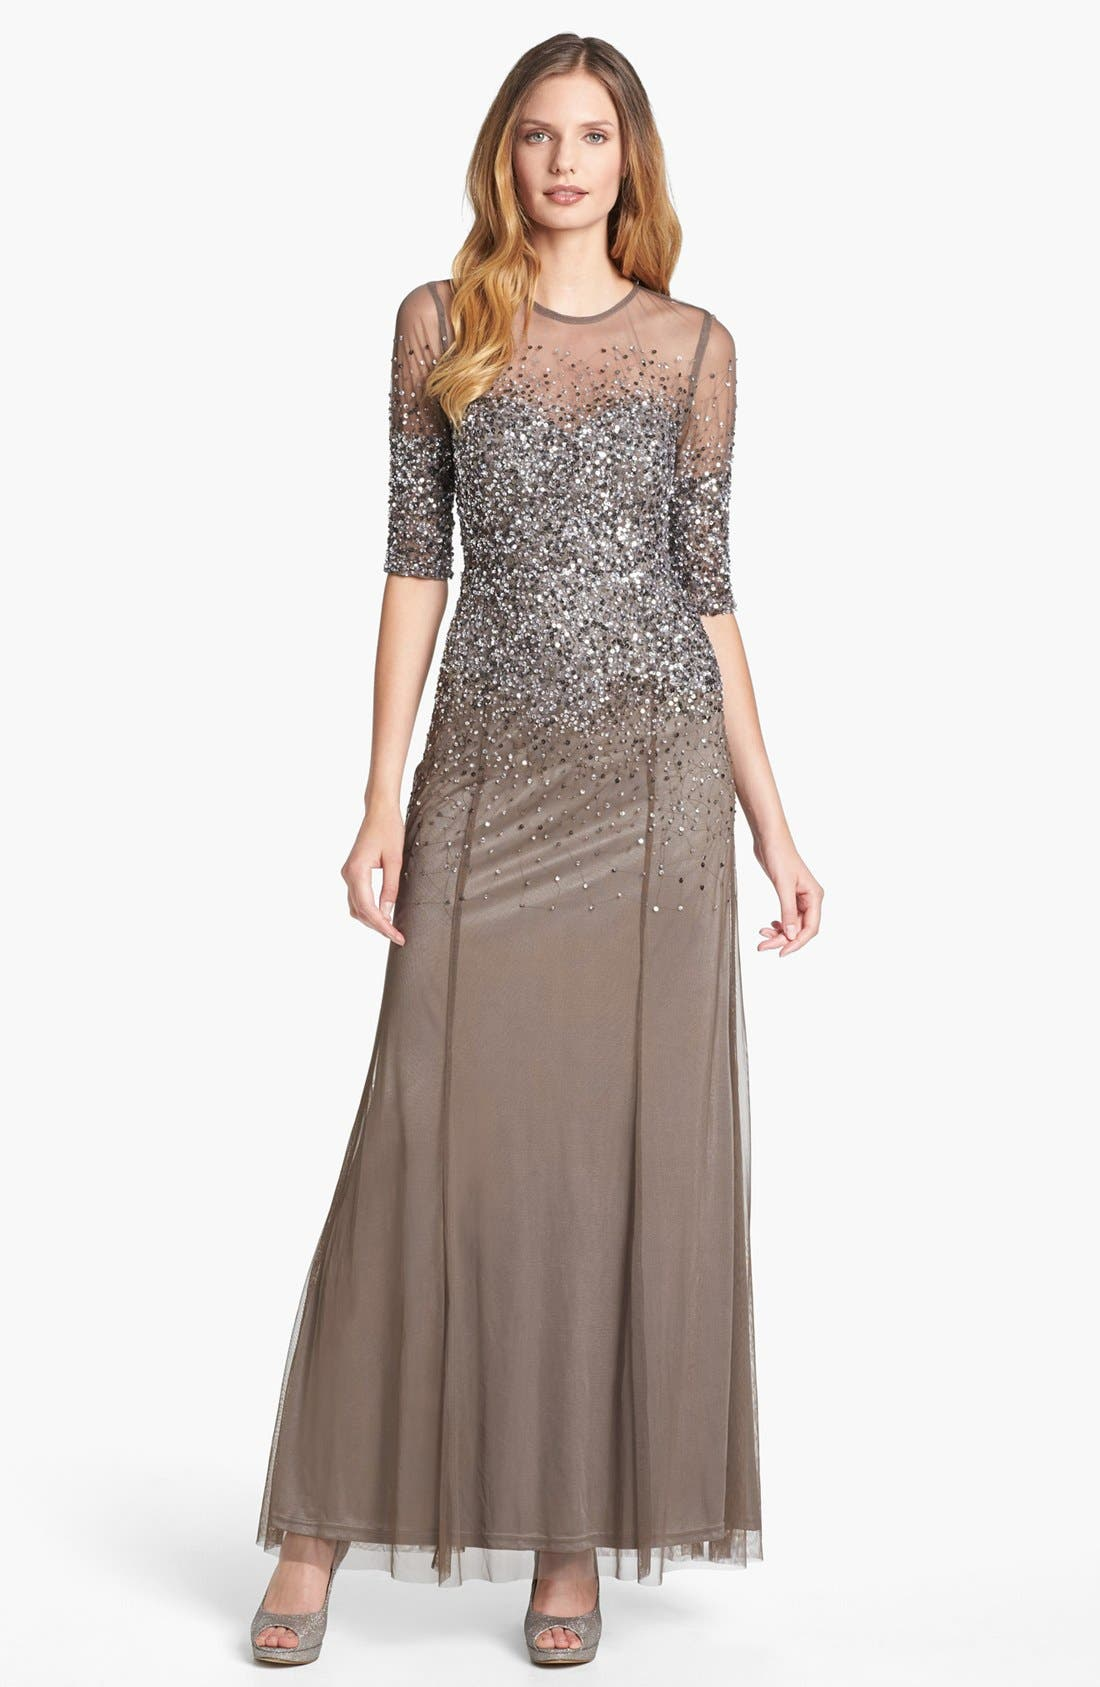 Alternate Image 1 Selected - Adrianna Papell Beaded Illusion Bodice Mesh Gown